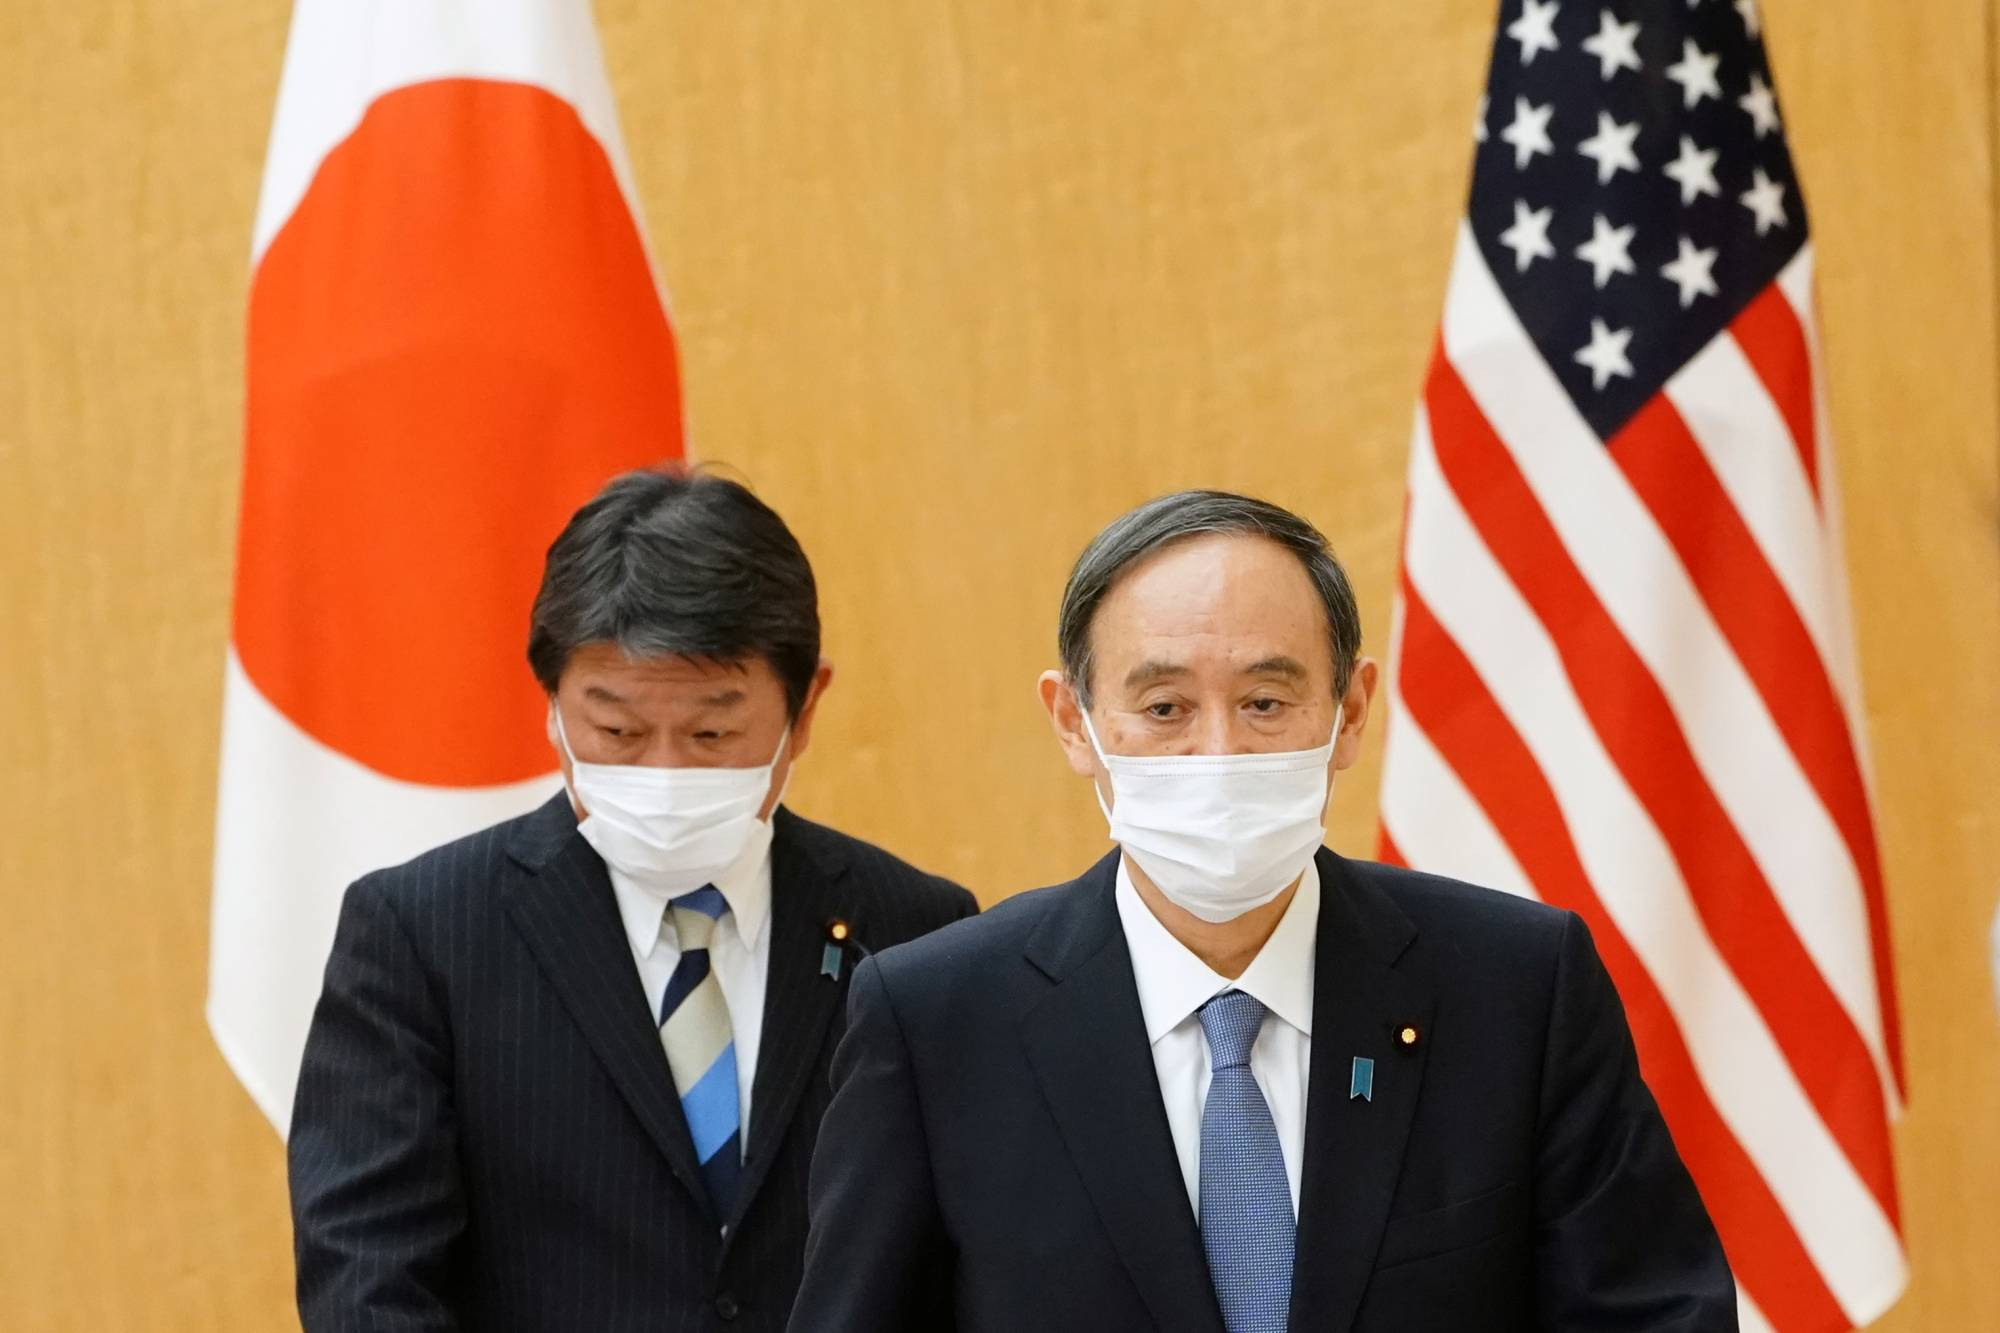 Prime Minister Yoshihide Suga and Foreign Minister Toshimitsu Motegi attend a meeting with the U.S. Secretary of State Antony Blinken at the Prime Minister's office in Tokyo on March 16. | REUTERS